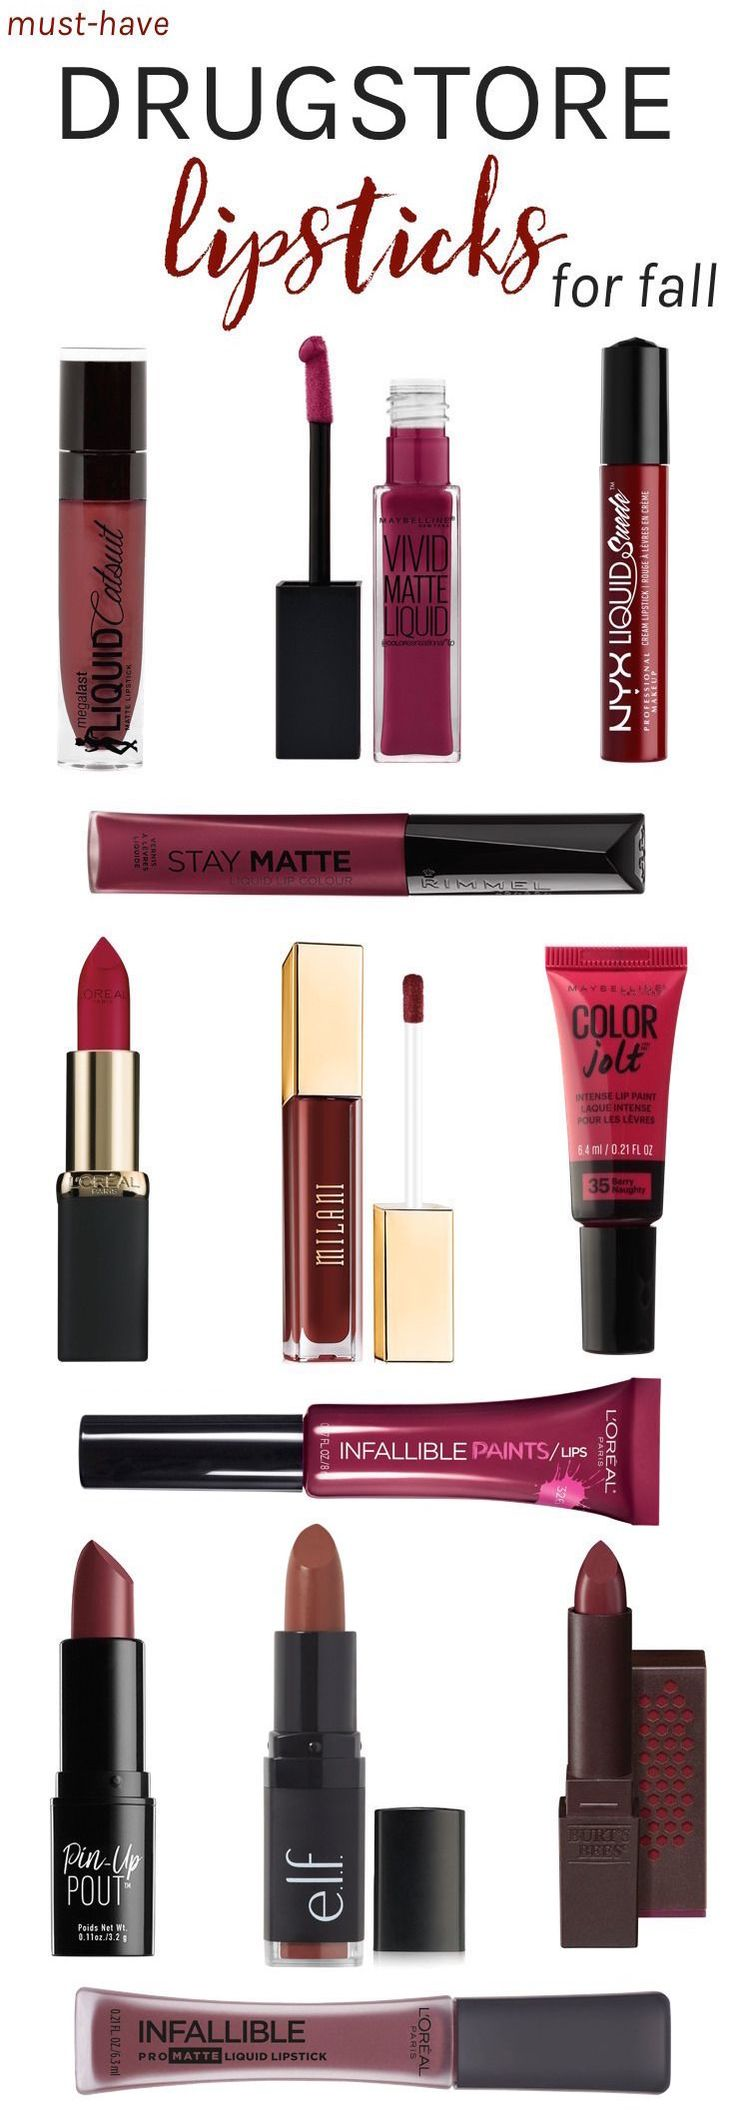 Fall calls for a switch to moody, darker colors, and what better way to create bold looks than with perfectly painted lips! Here are the must-have drugstore lipsticks you'll want to stock up on for autumn and winter!